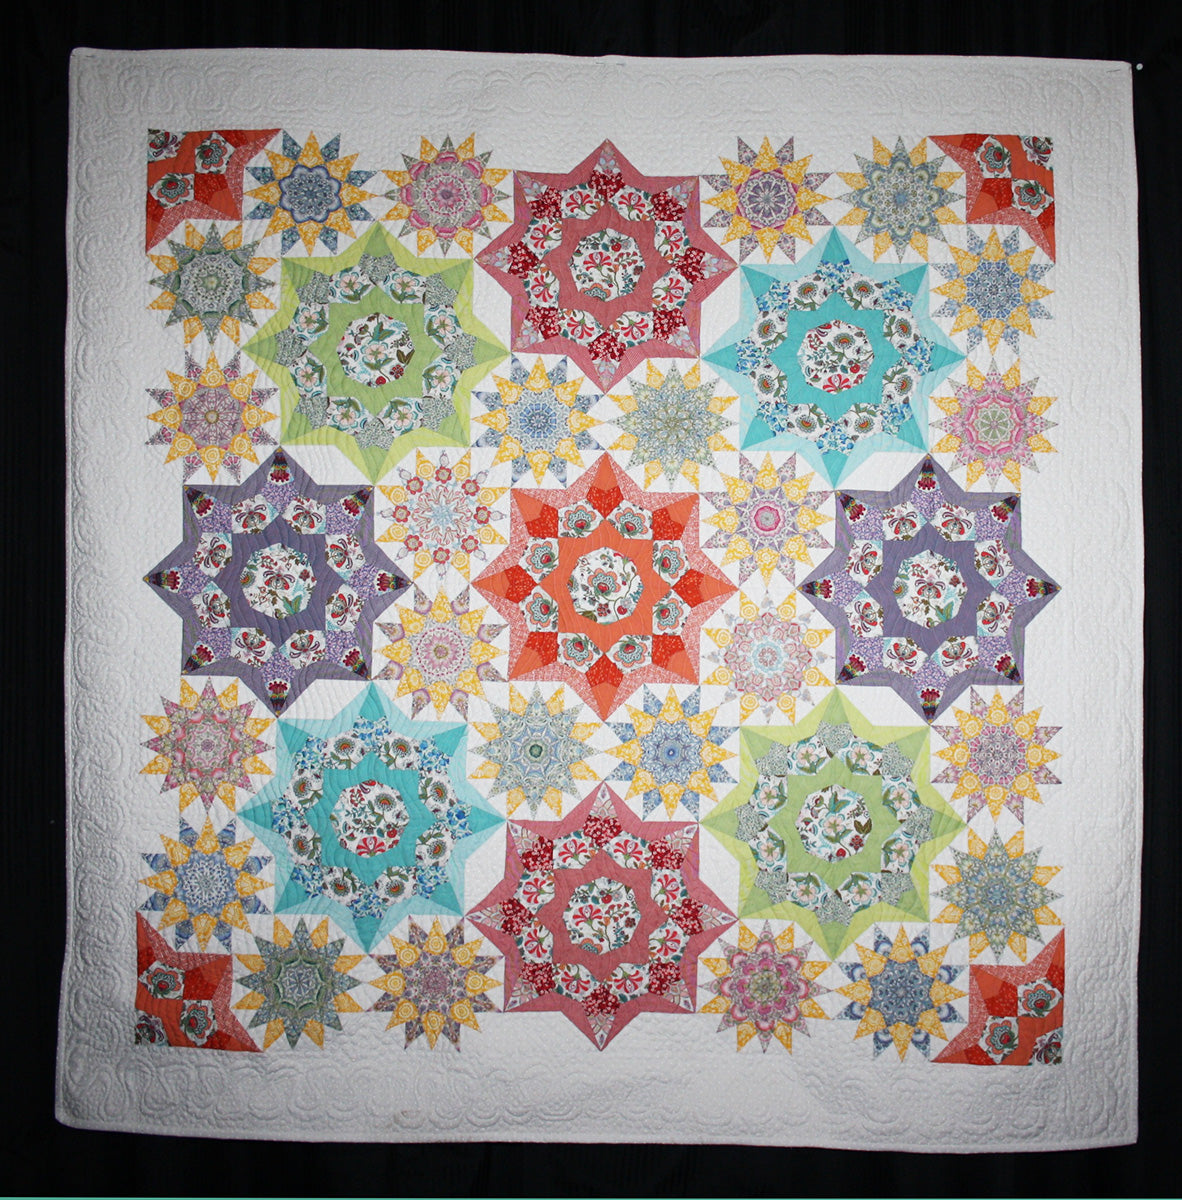 STAR PAPER TEMPLATES FOR ENGLISH PAPER PIECING